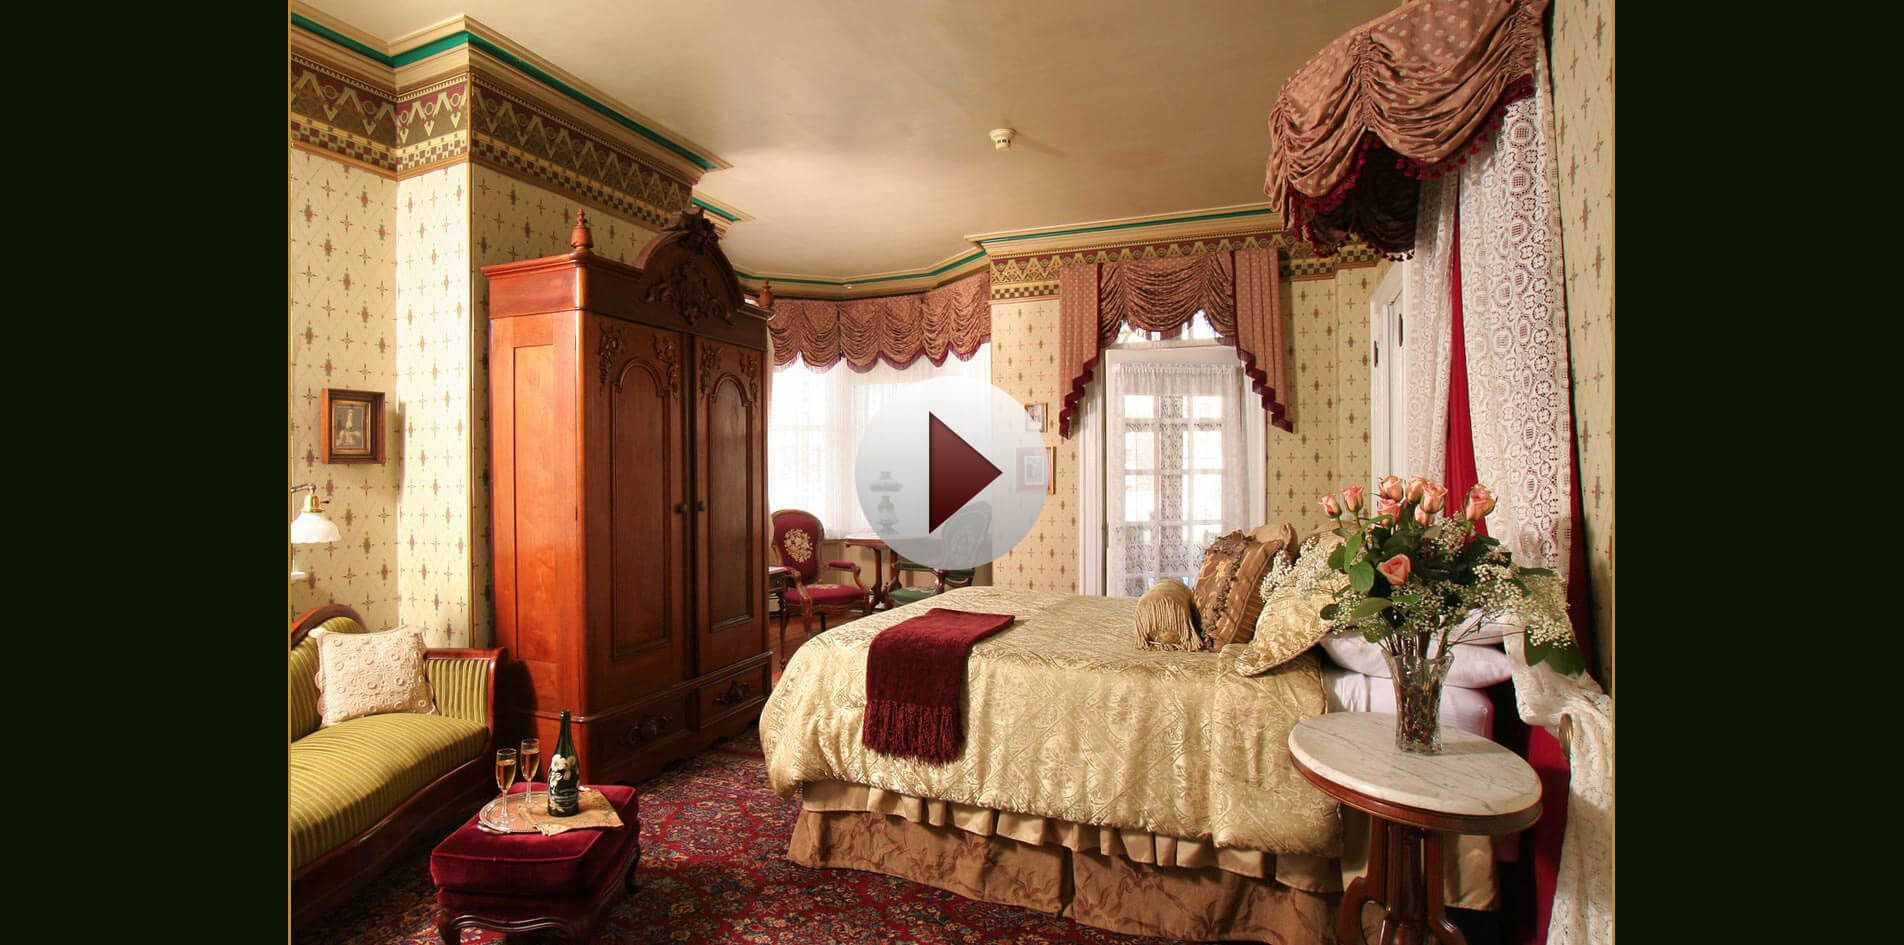 cape jersey bed new photo southern stock states american us house and may breakfast united mansion nj